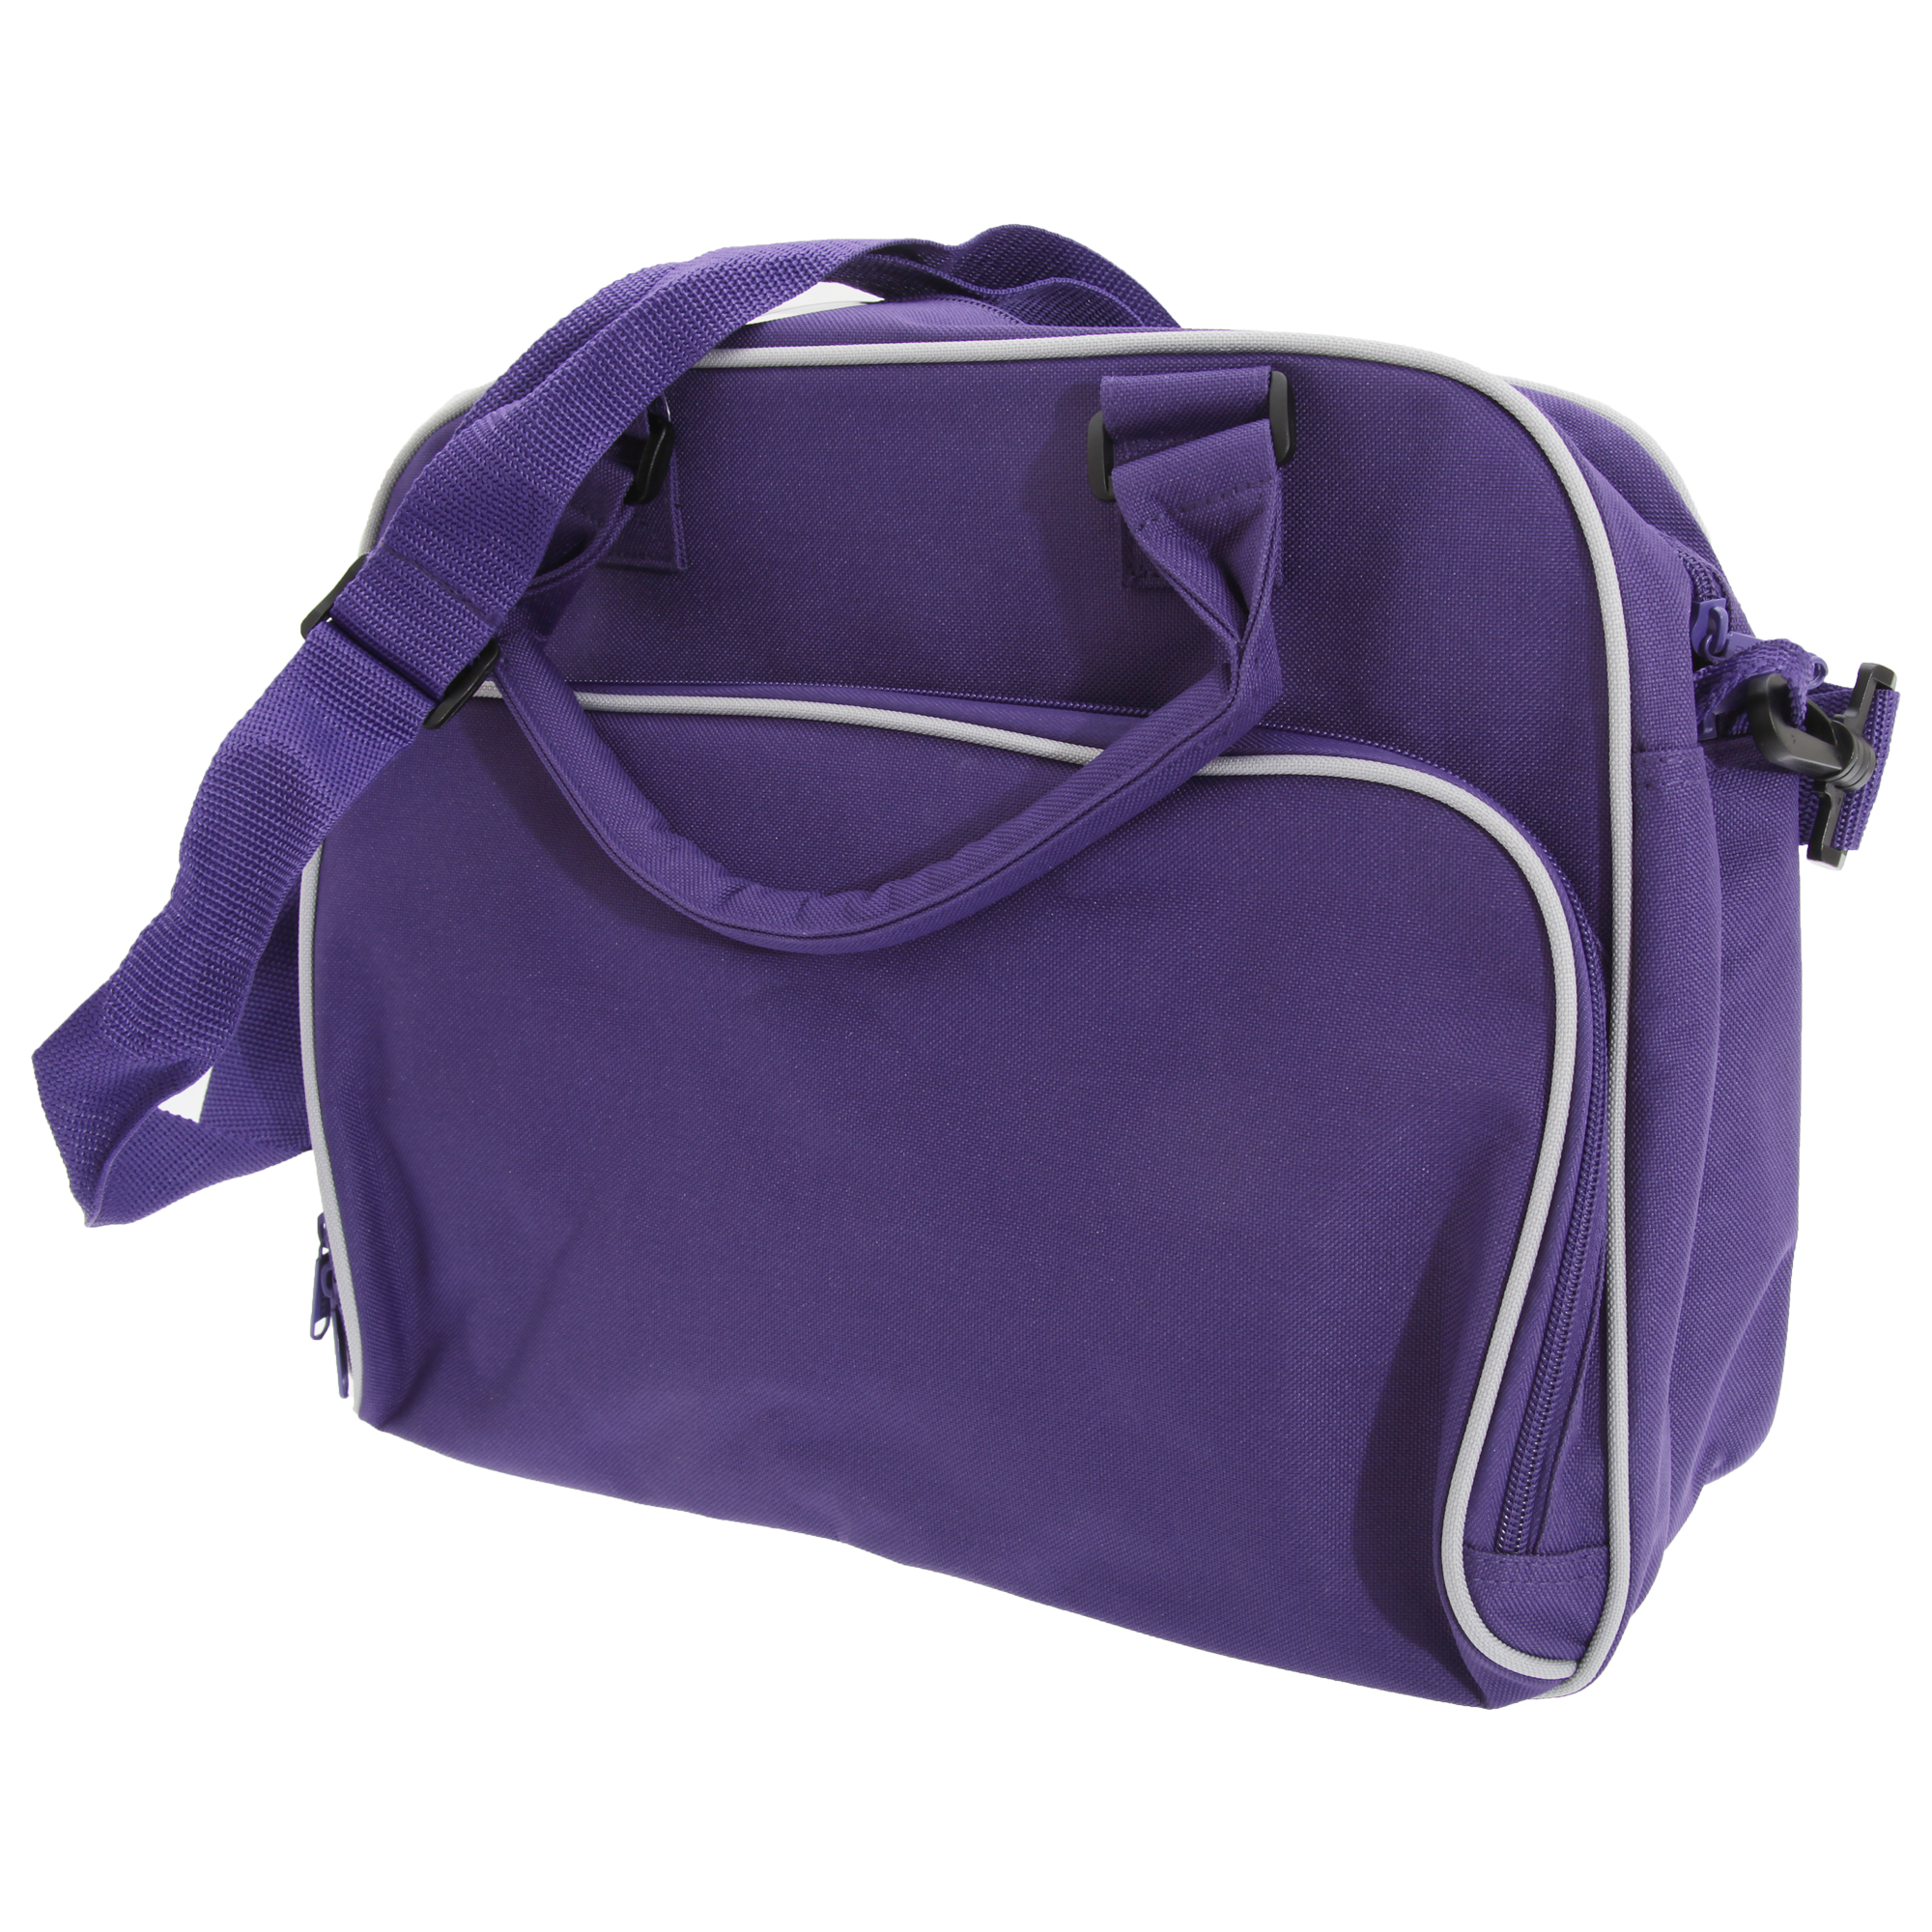 Bagbase Compact Junior Dance Messenger Bag (15 Litres) (Pack of 2) (One Size) (Purple/Light Grey)